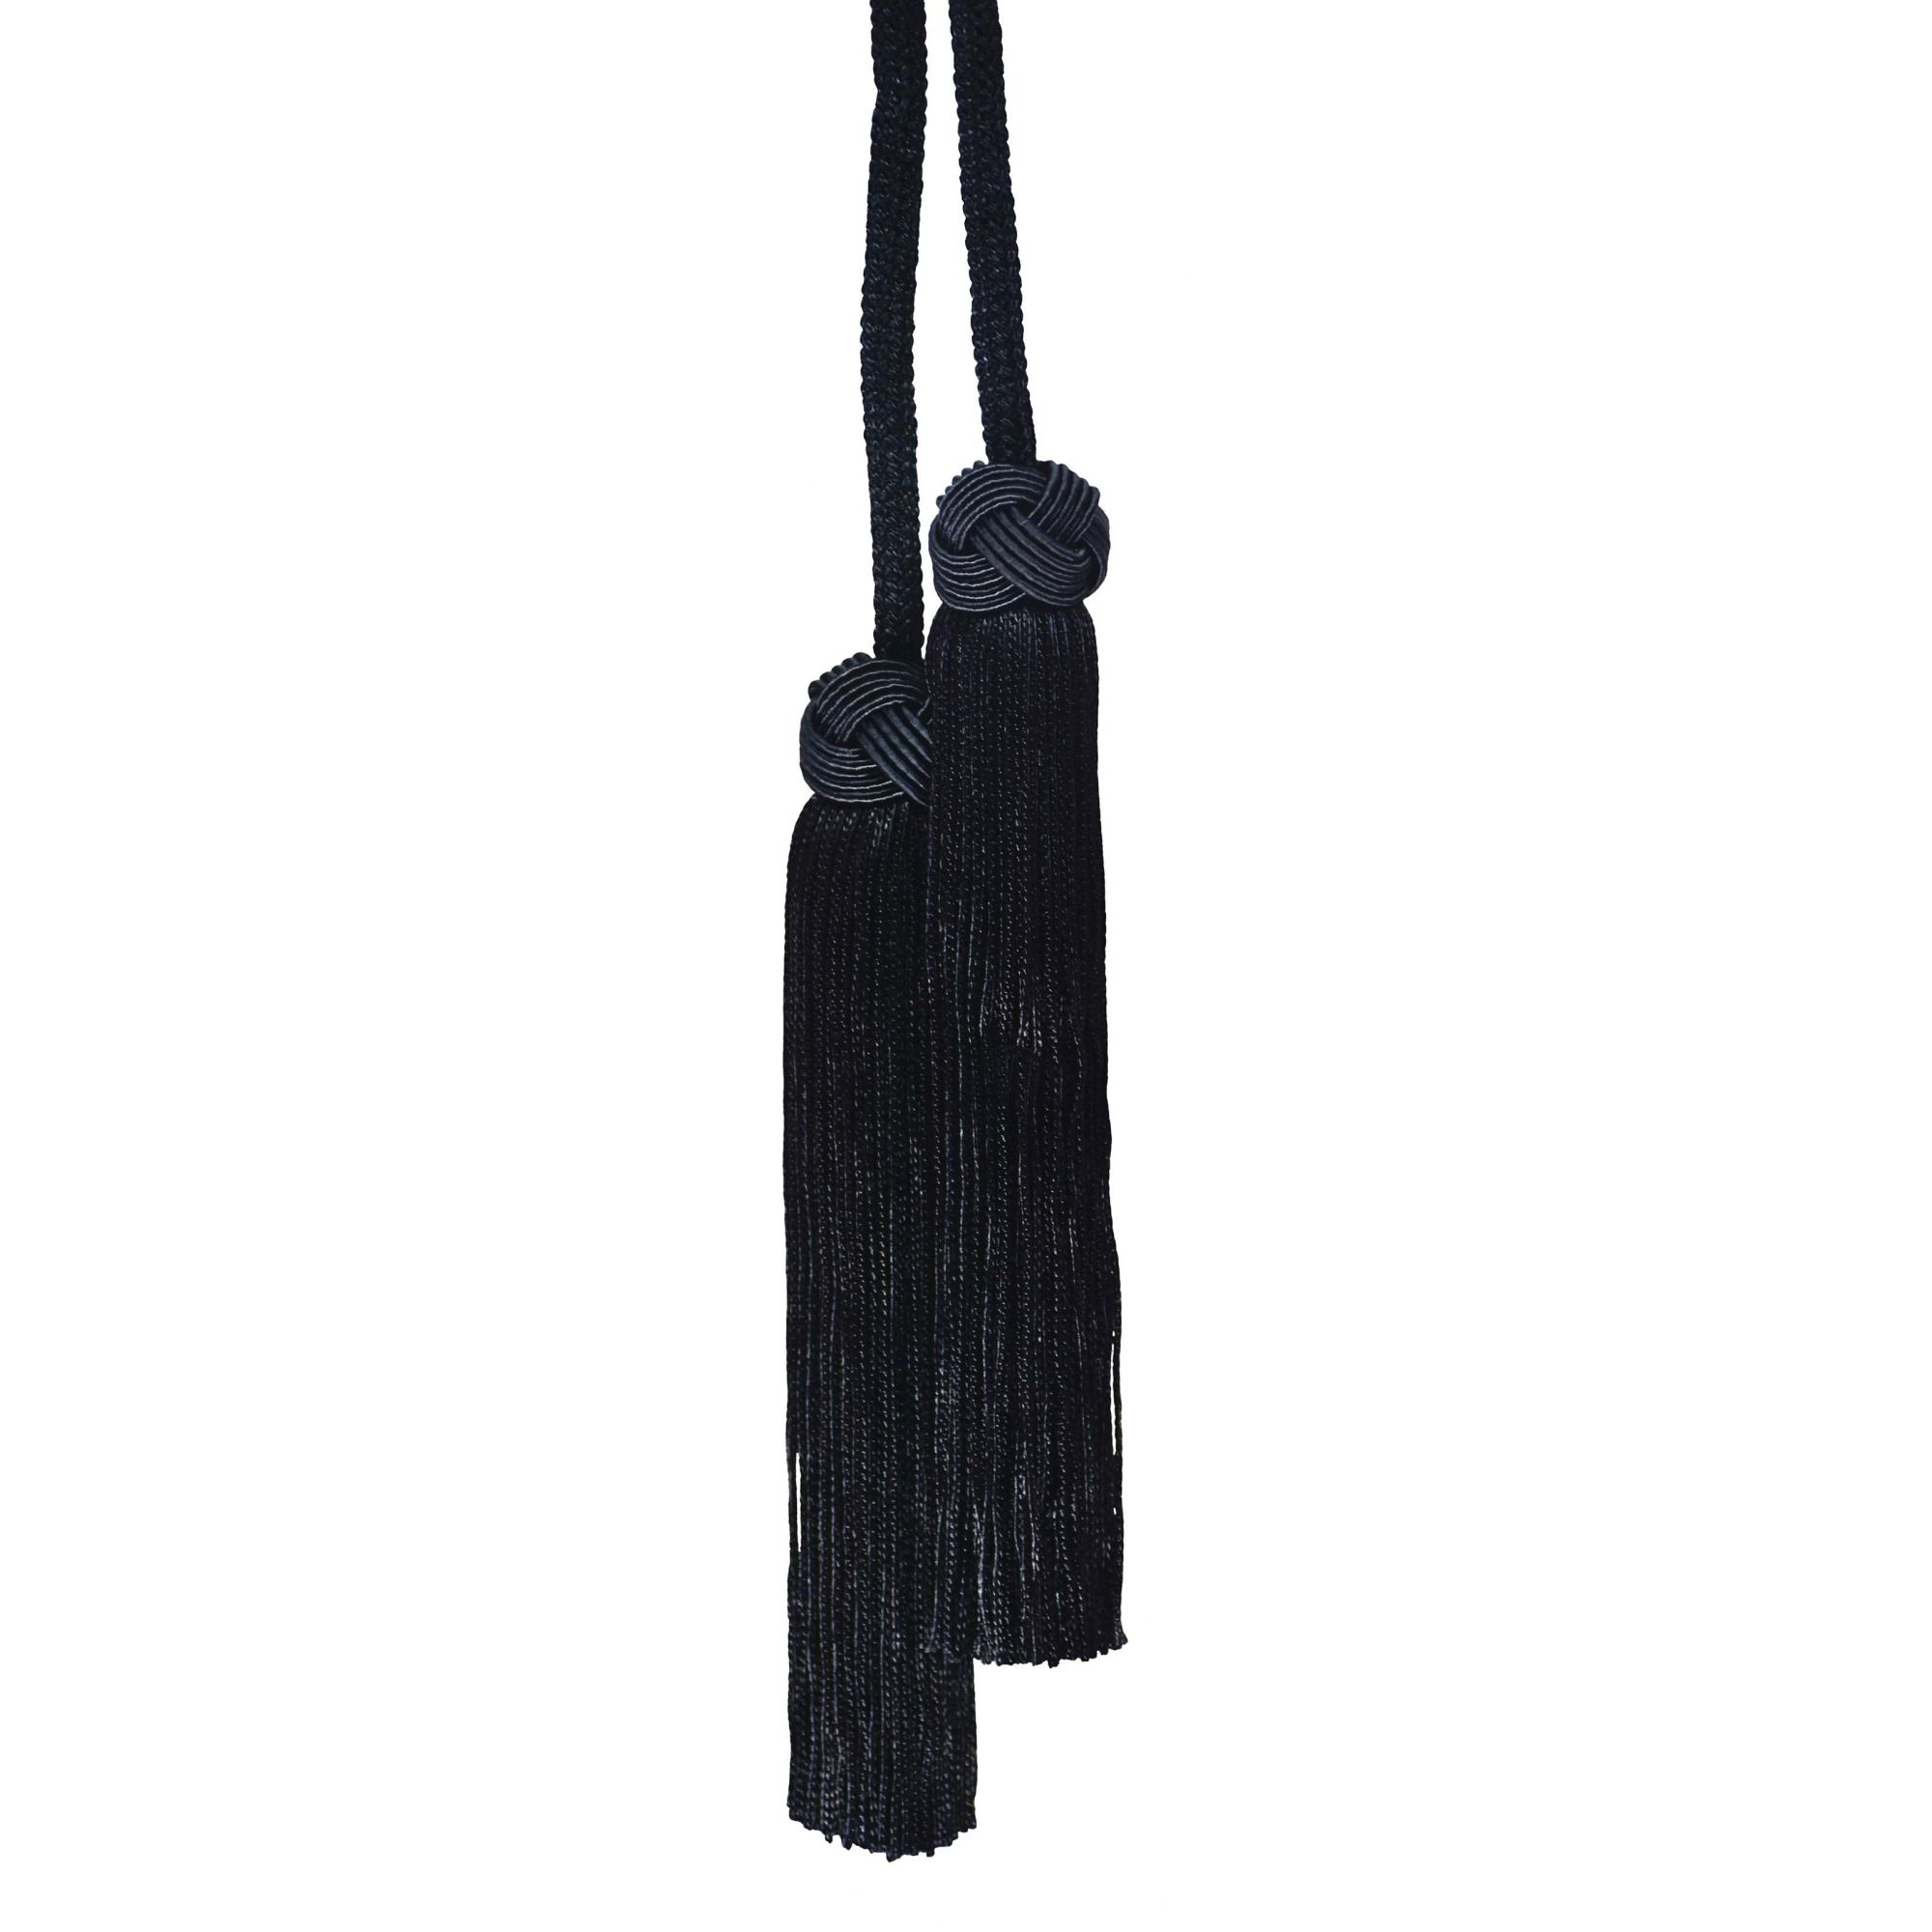 Cincture with Tassel 302